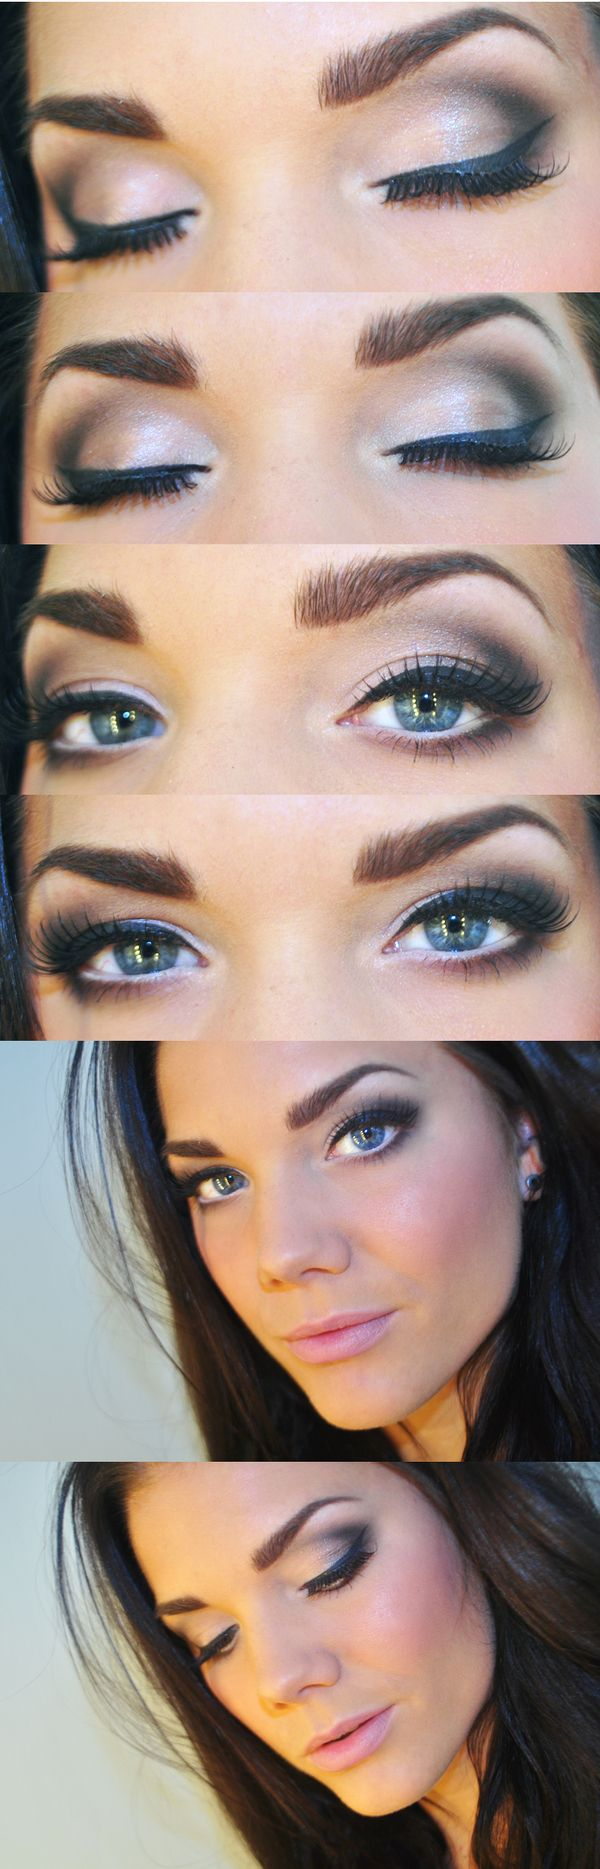 For stunning eyes